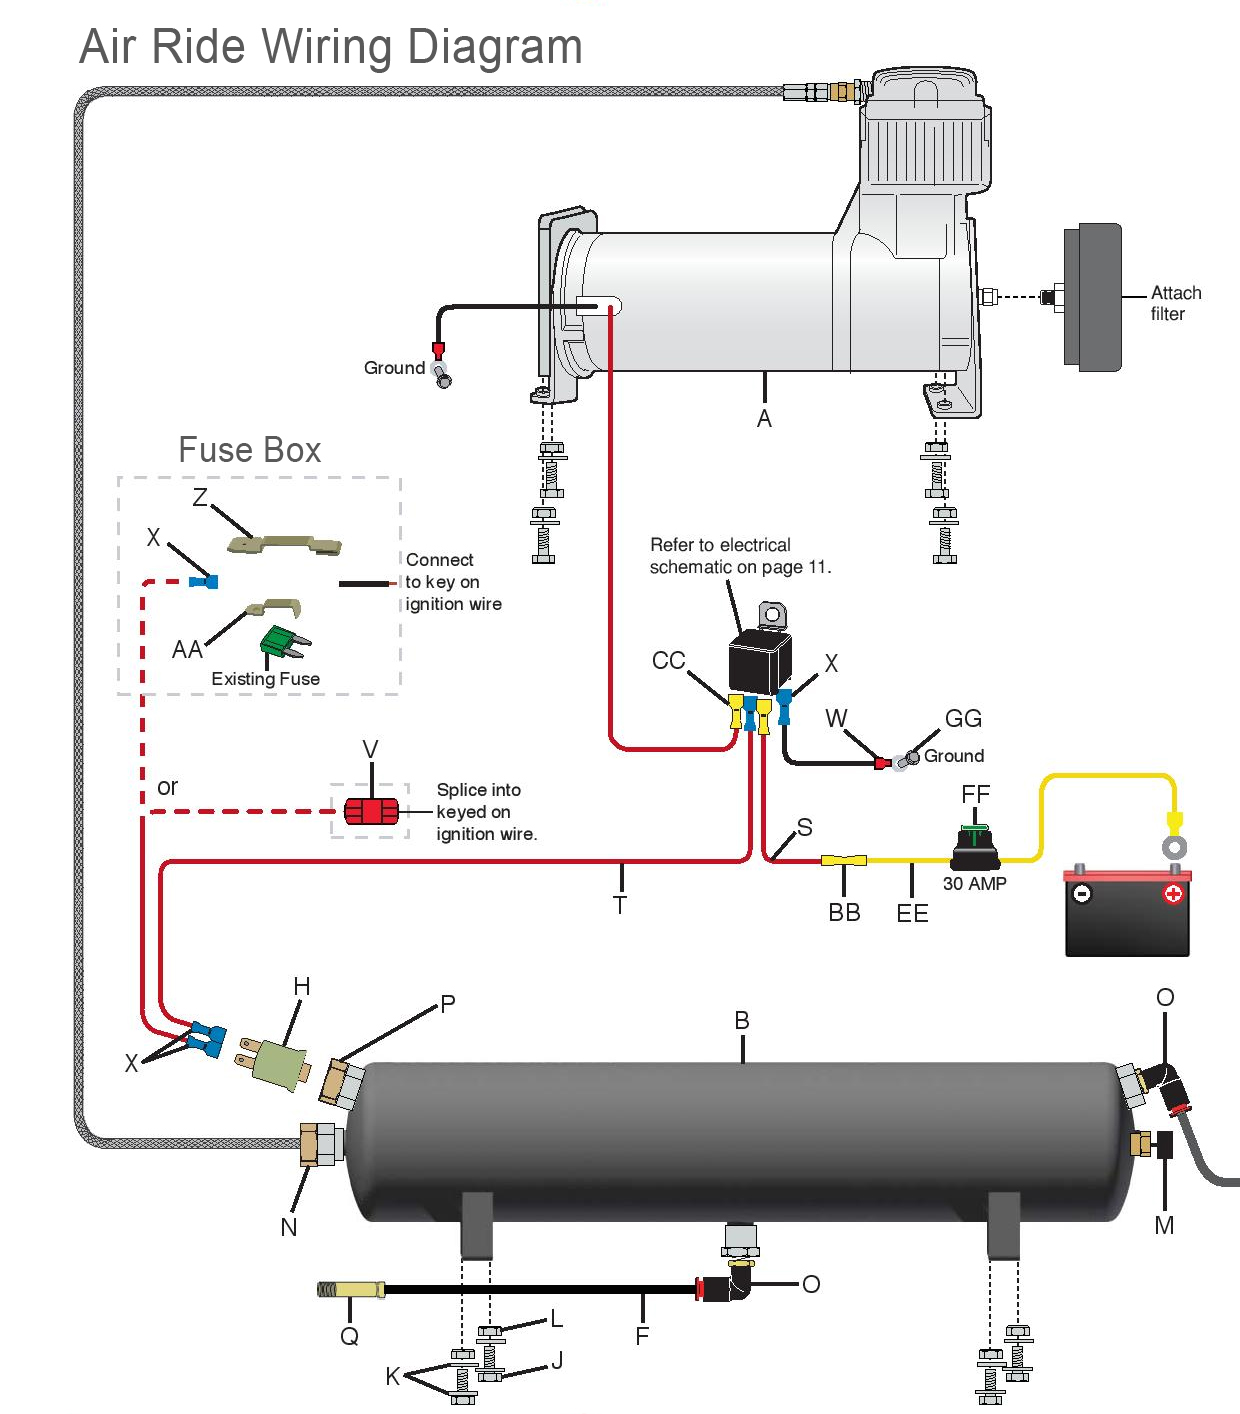 viair compressor wiring diagram lt 1122  basic wiring diagram air ride download diagram  lt 1122  basic wiring diagram air ride